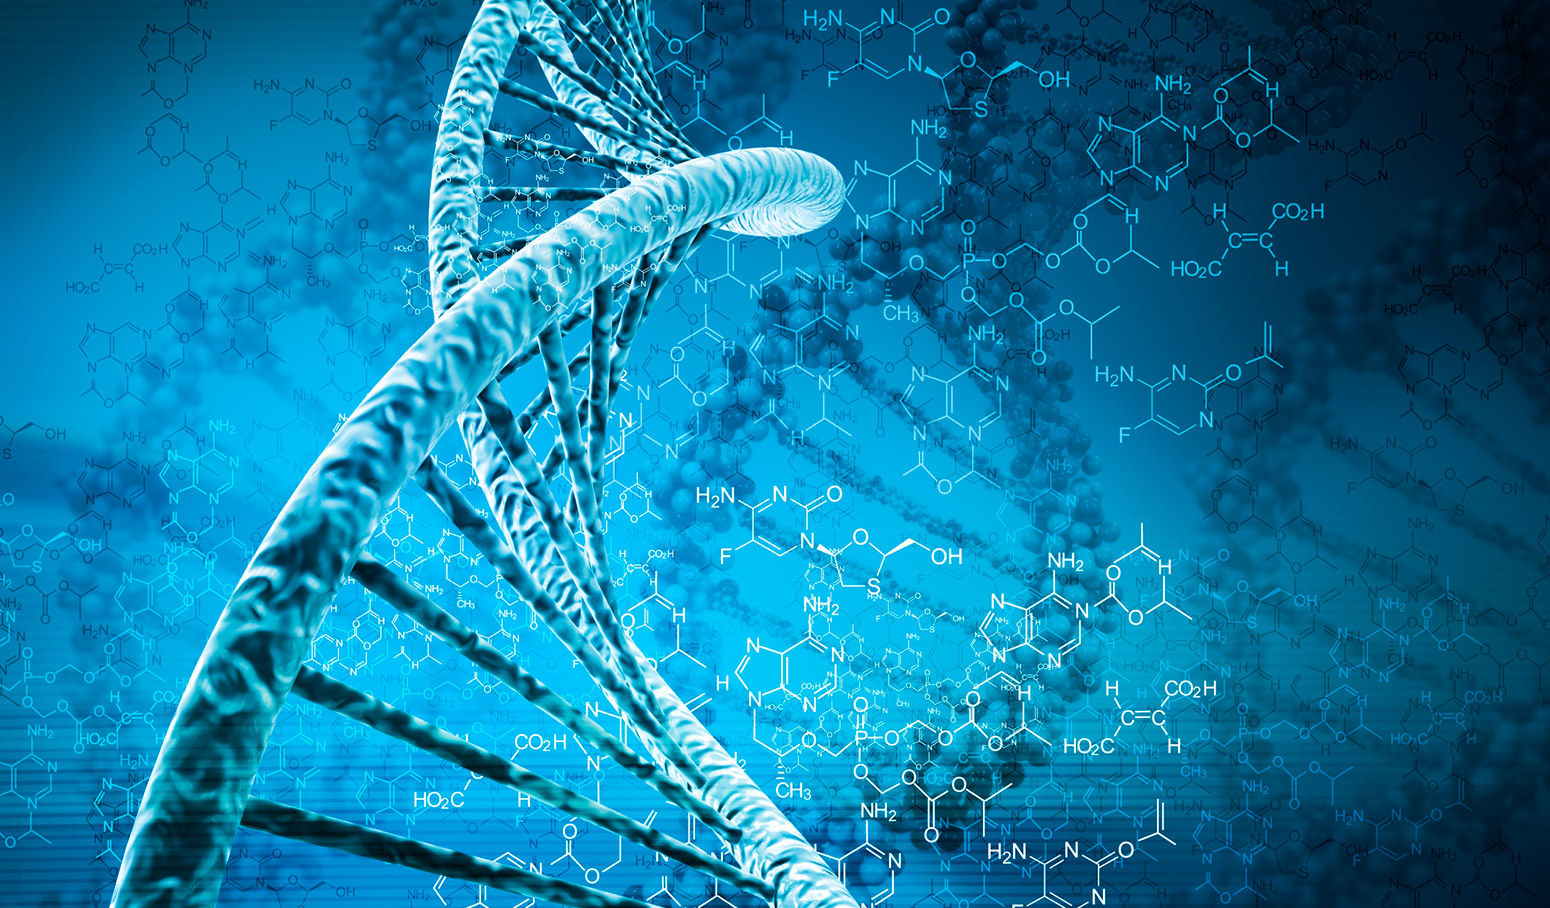 about the human genome The human genome project was an international research effort to determine the sequence of the human genome and identify the genes that it contains the project was coordinated by the national institutes of health and the us department of energy.